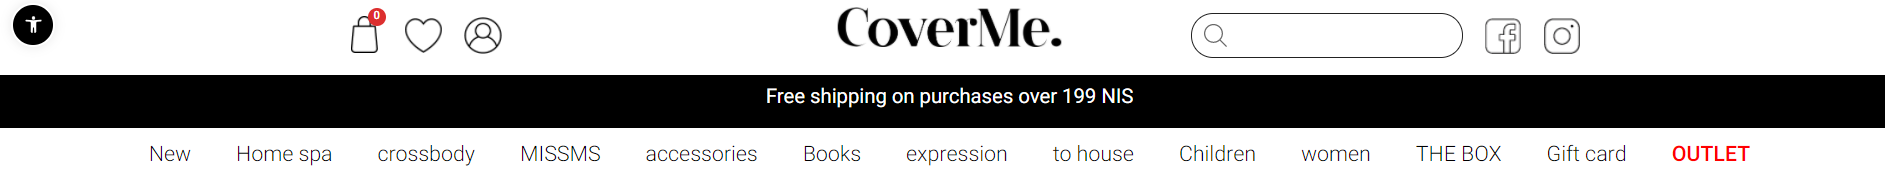 CoverMe product